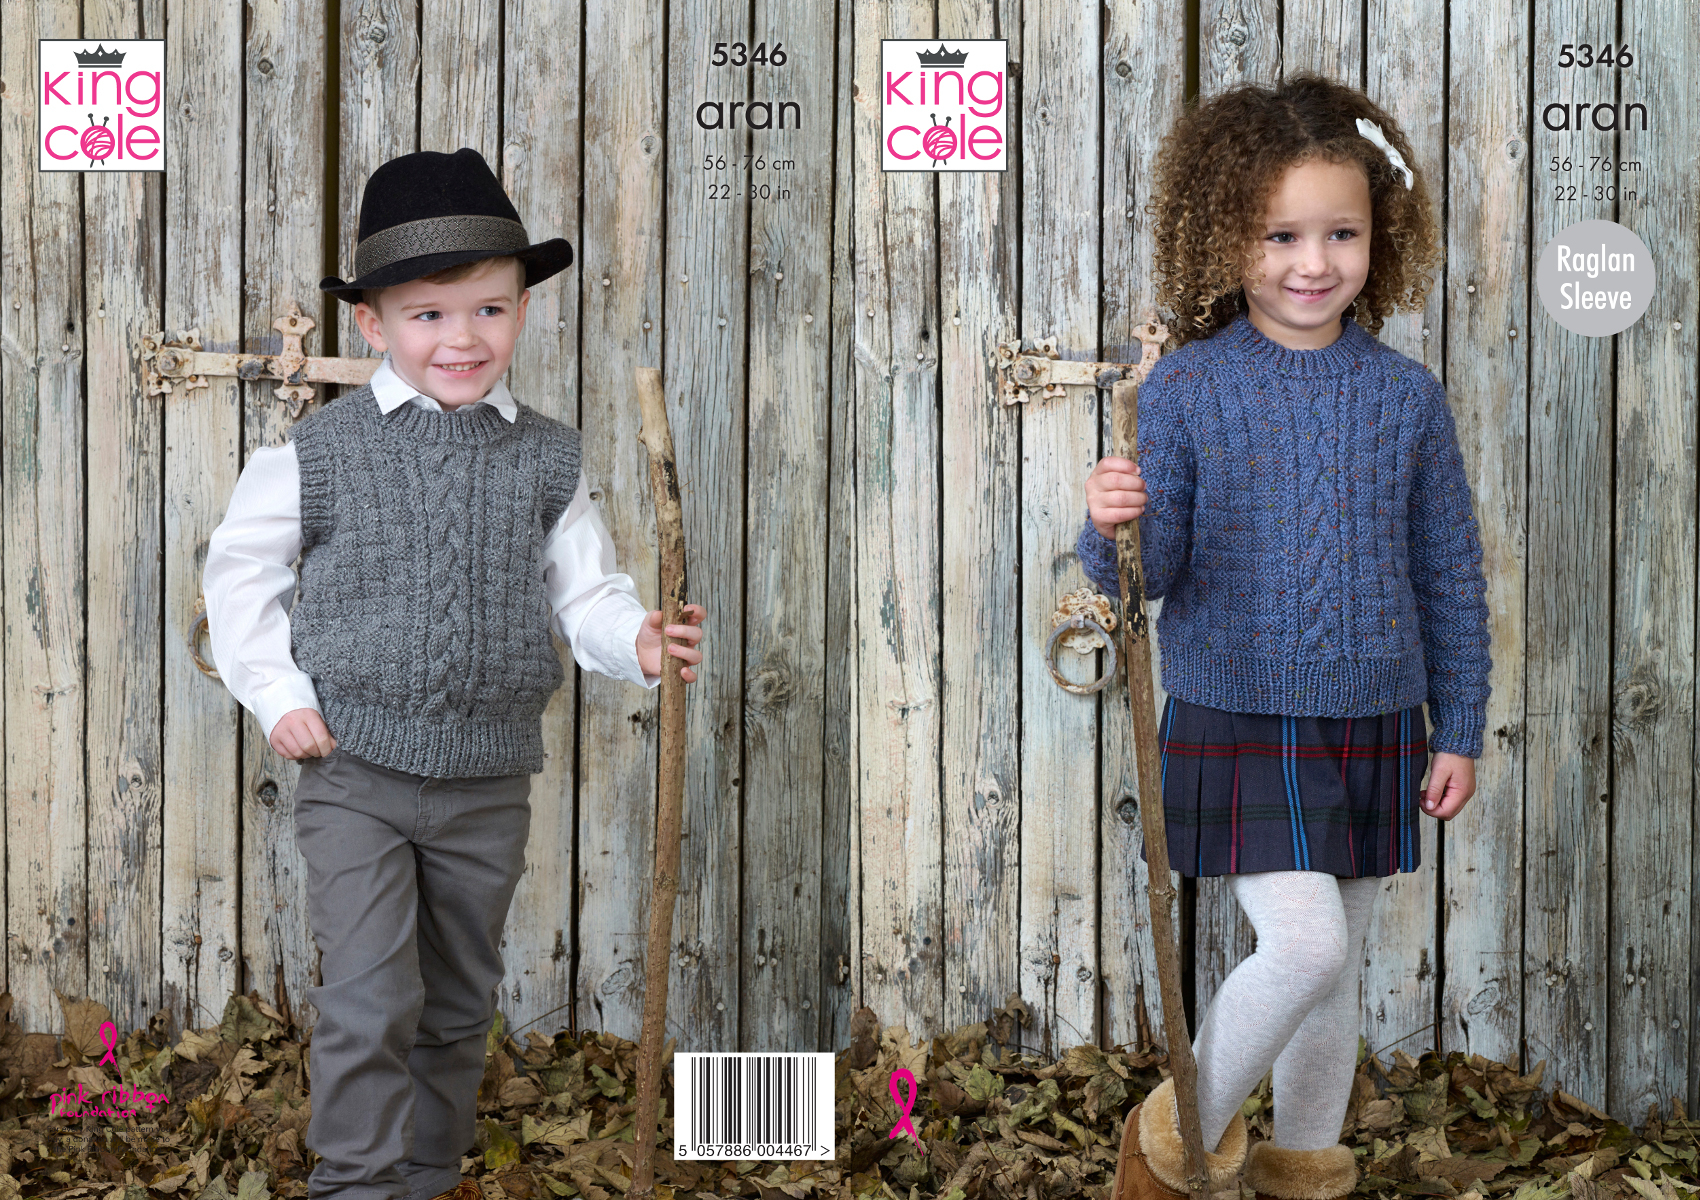 Childrens Aran Knitting Patterns Details About King Cole Childrens Aran Knitting Pattern Girls Boys Cable Sweater Slipover 5346